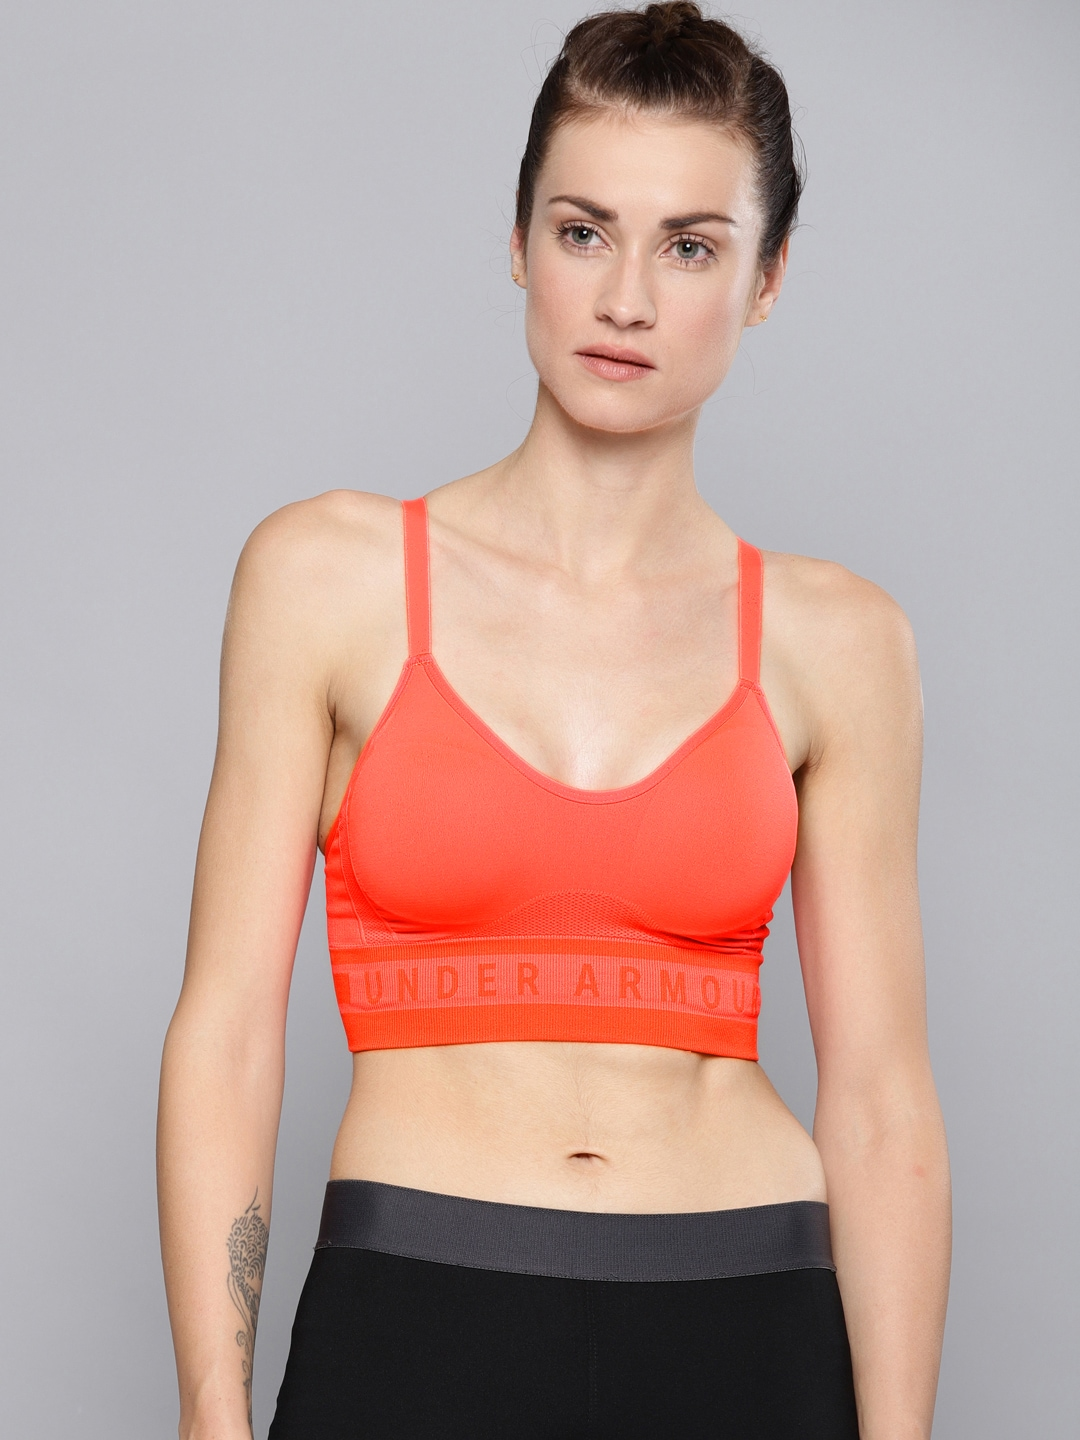 25c1803837 Sports Wear For Women - Buy Women Sportswear Online